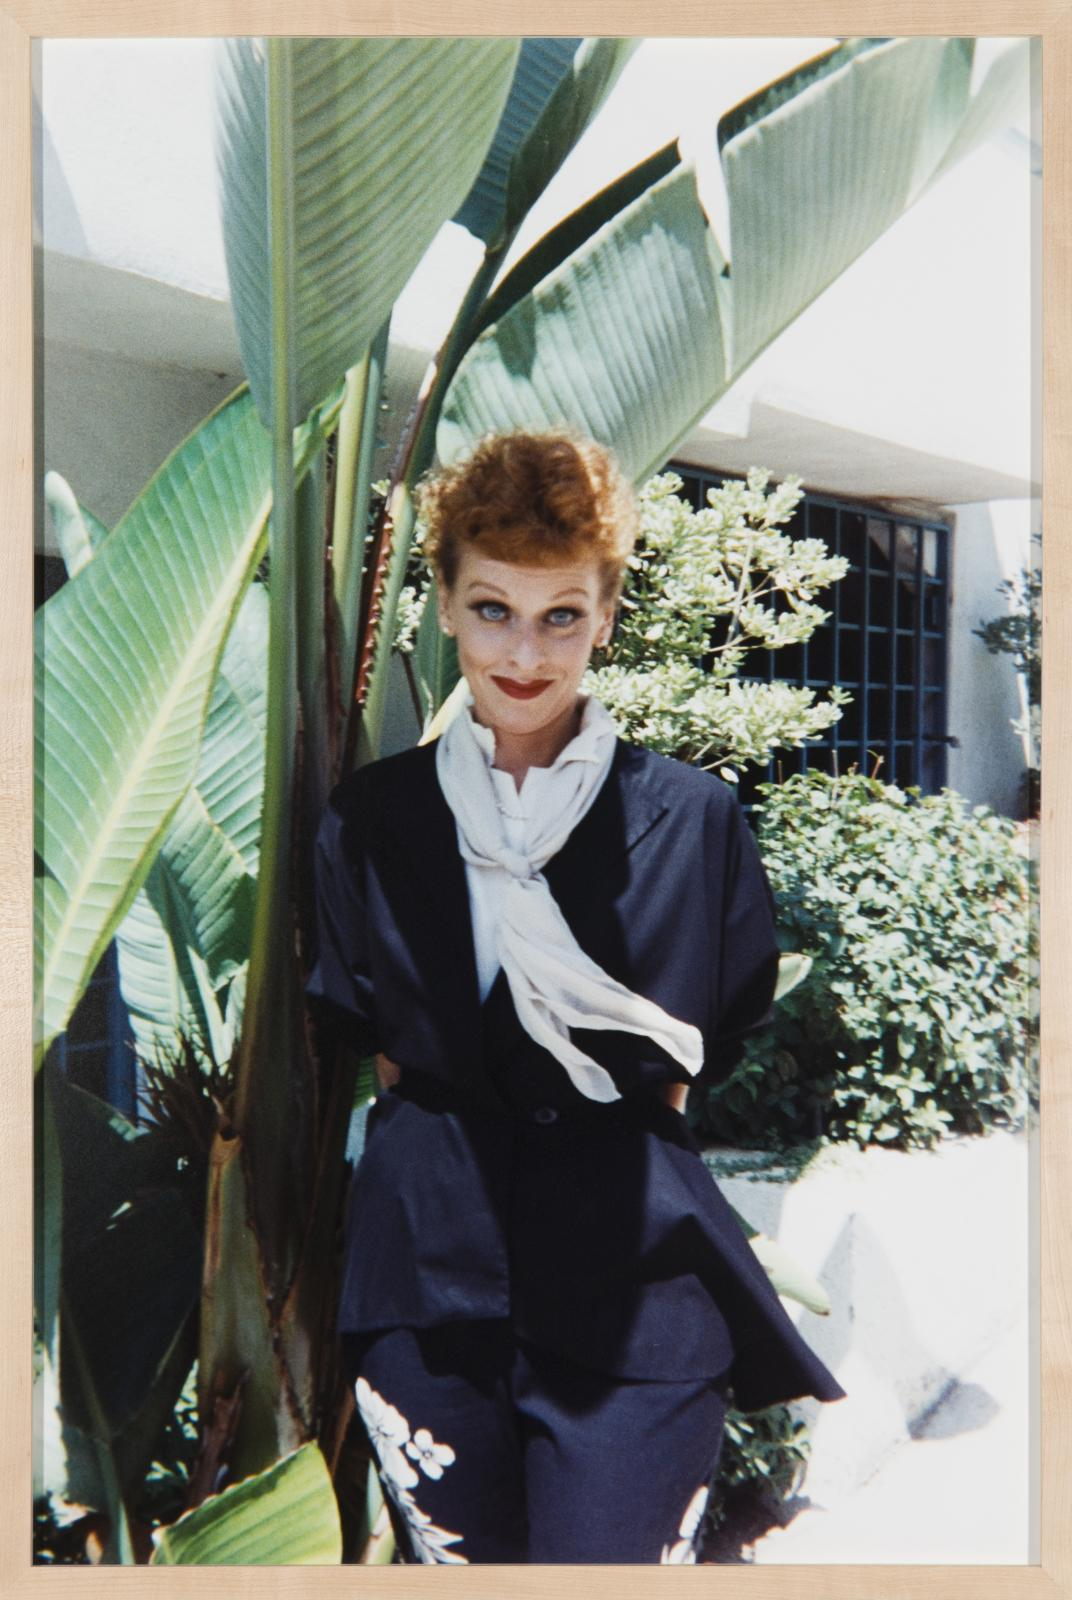 A person, dressed as Lucille Ball, stands next to a bird of paradise plant and other shrubbery near a brightly lit building.